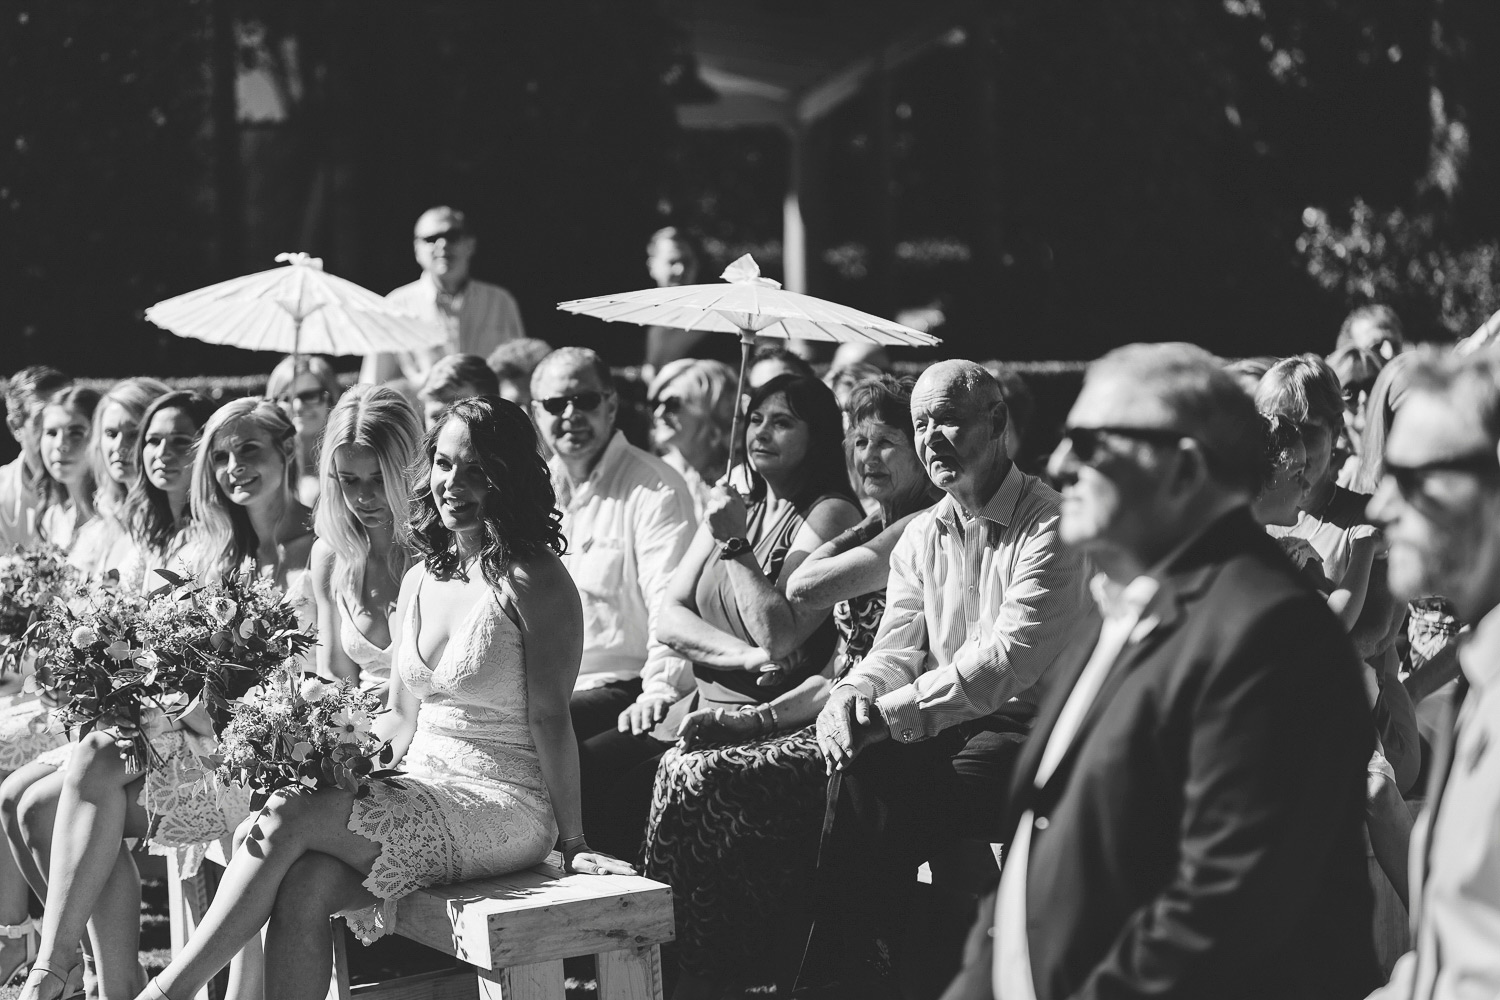 cape-town-wedding-photographer-western-cape-constansia-camilla-charlie-ray44.jpg